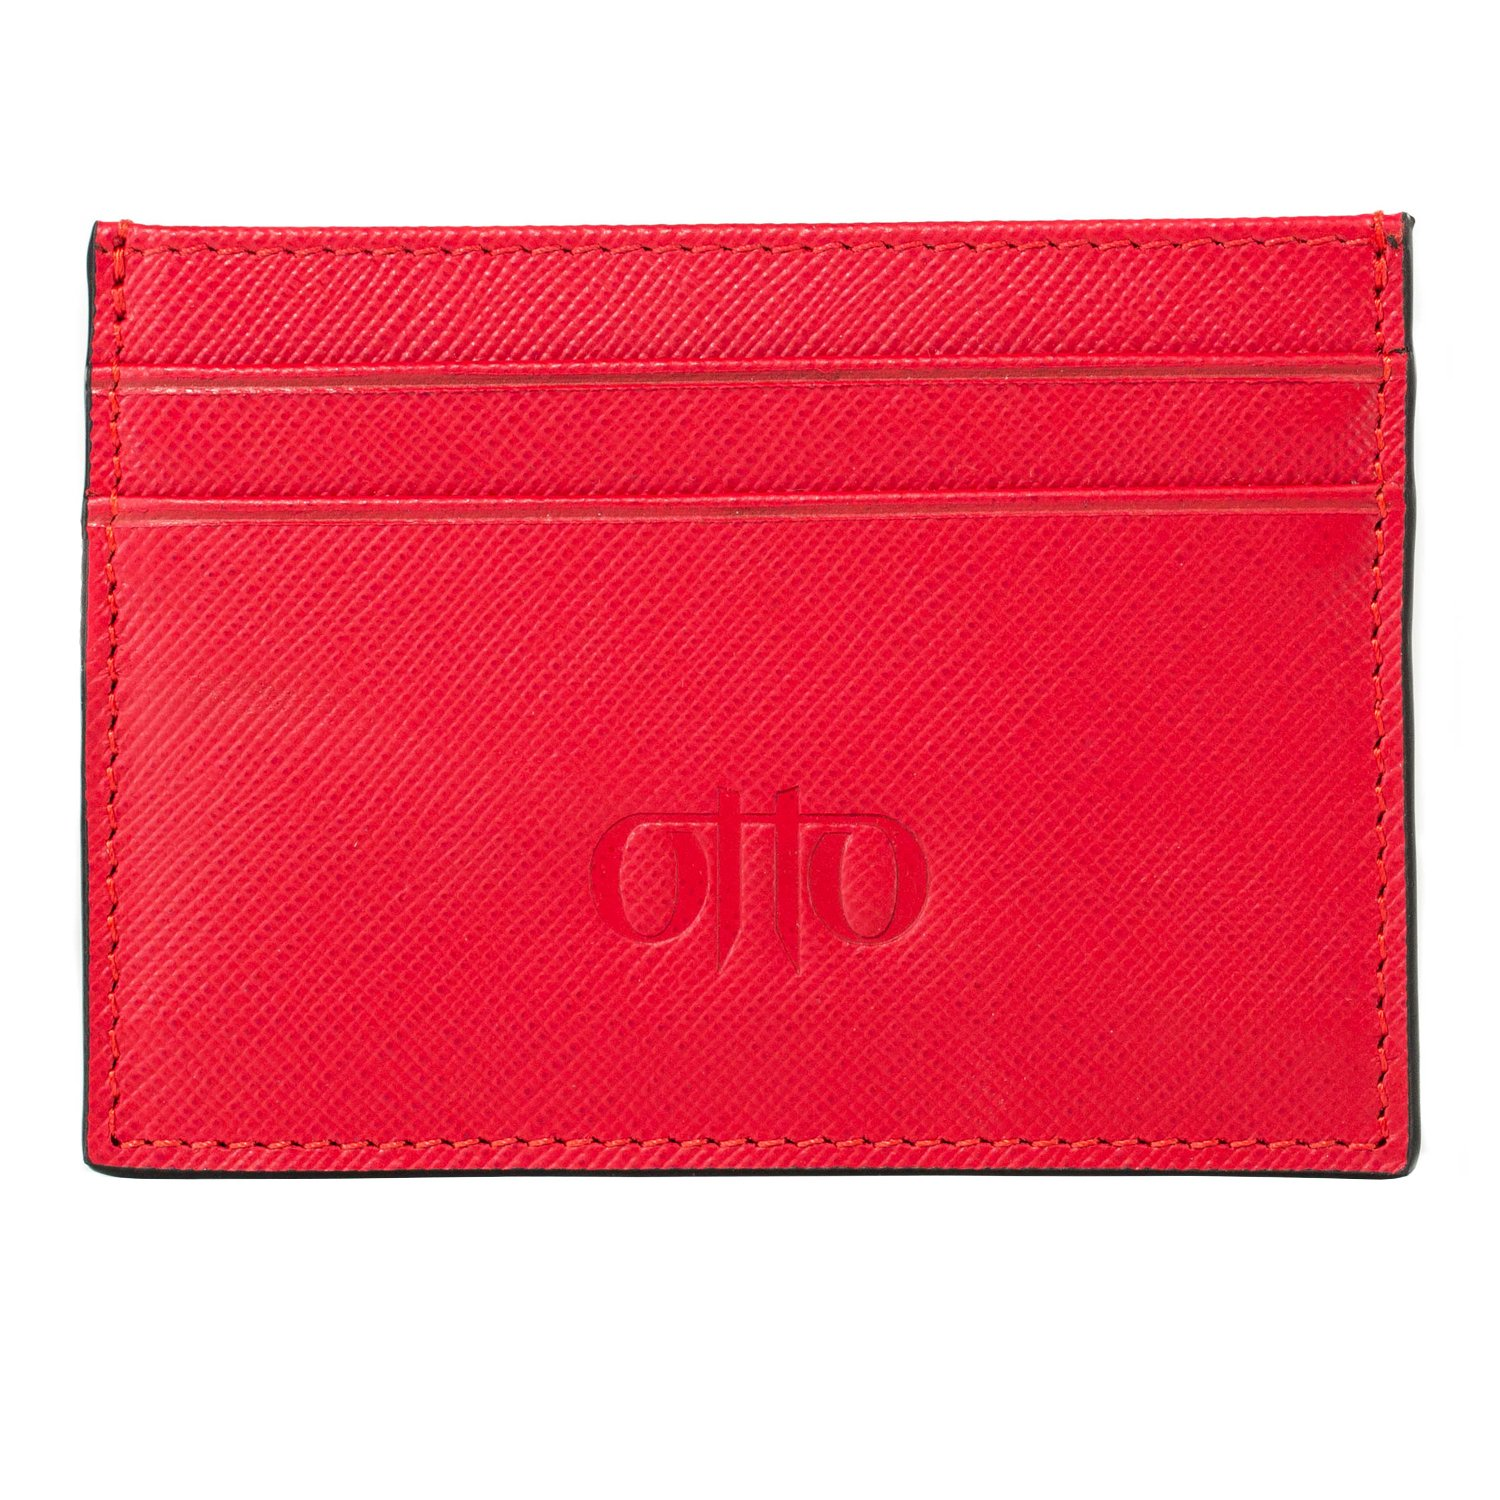 Otto Genuine Leather Wallet - Bank Cards, Money, Driver's License, RFID Blocking - Unisex